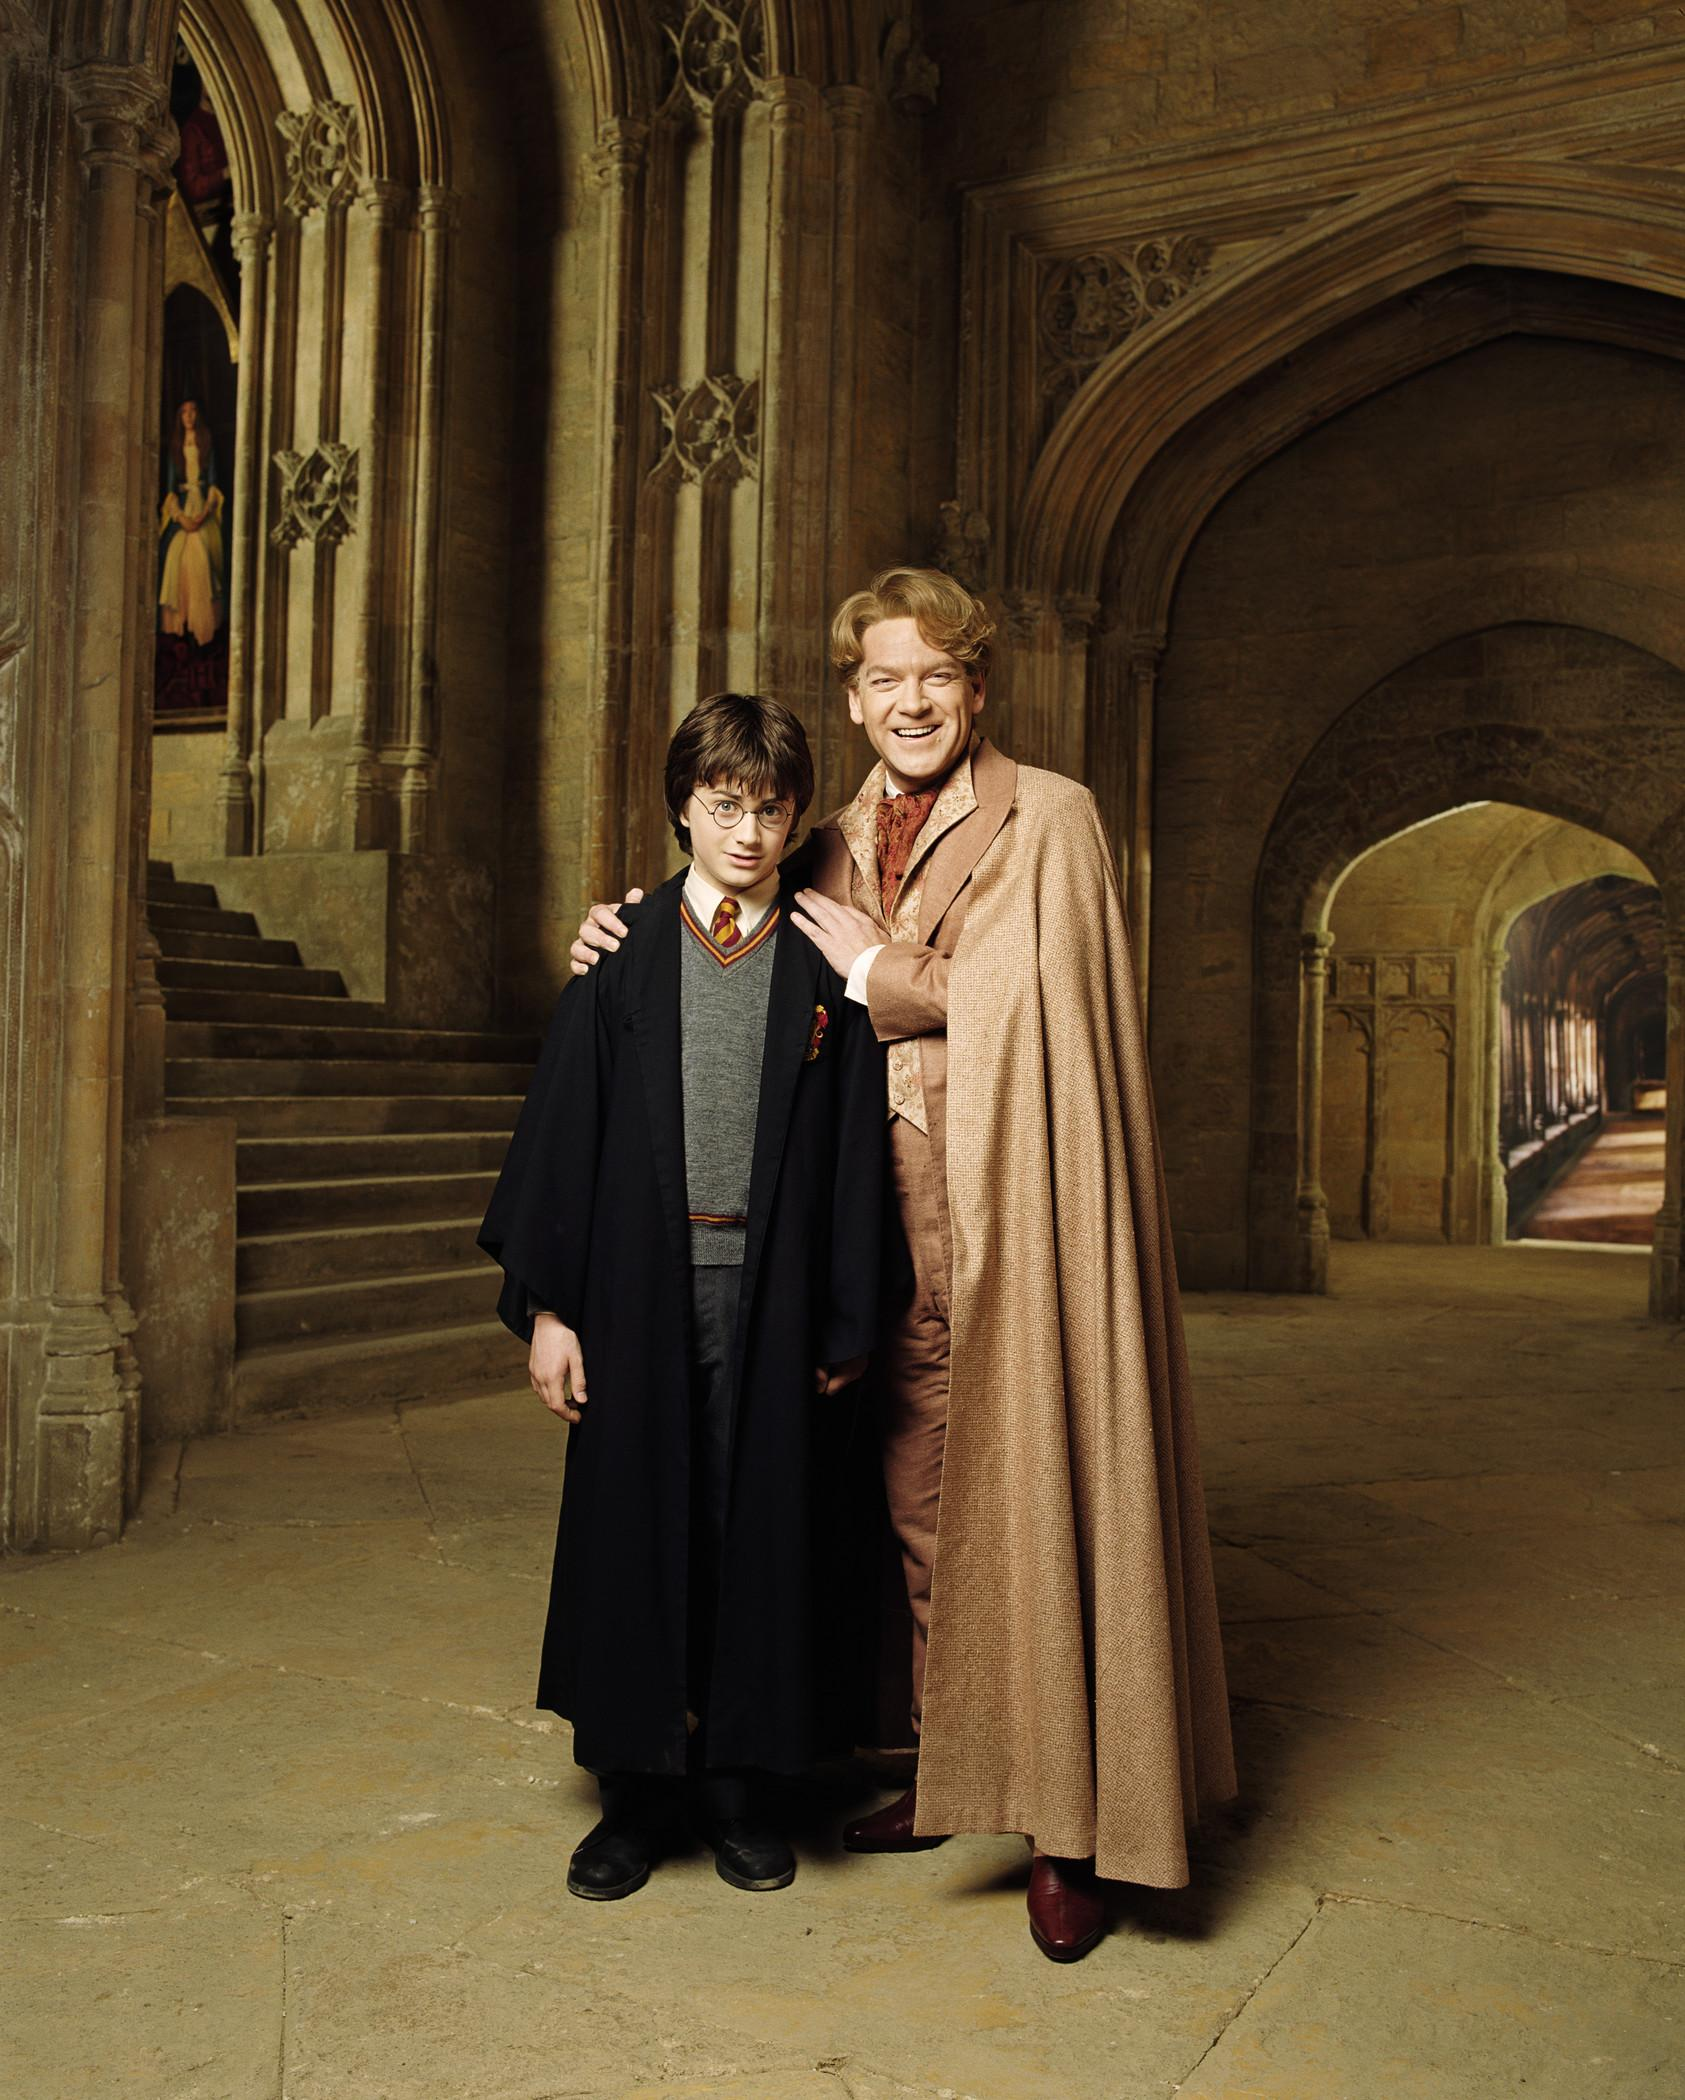 http://images4.wikia.nocookie.net/__cb20100822202053/harrypotter/images/c/cd/Long_gallery.jpg